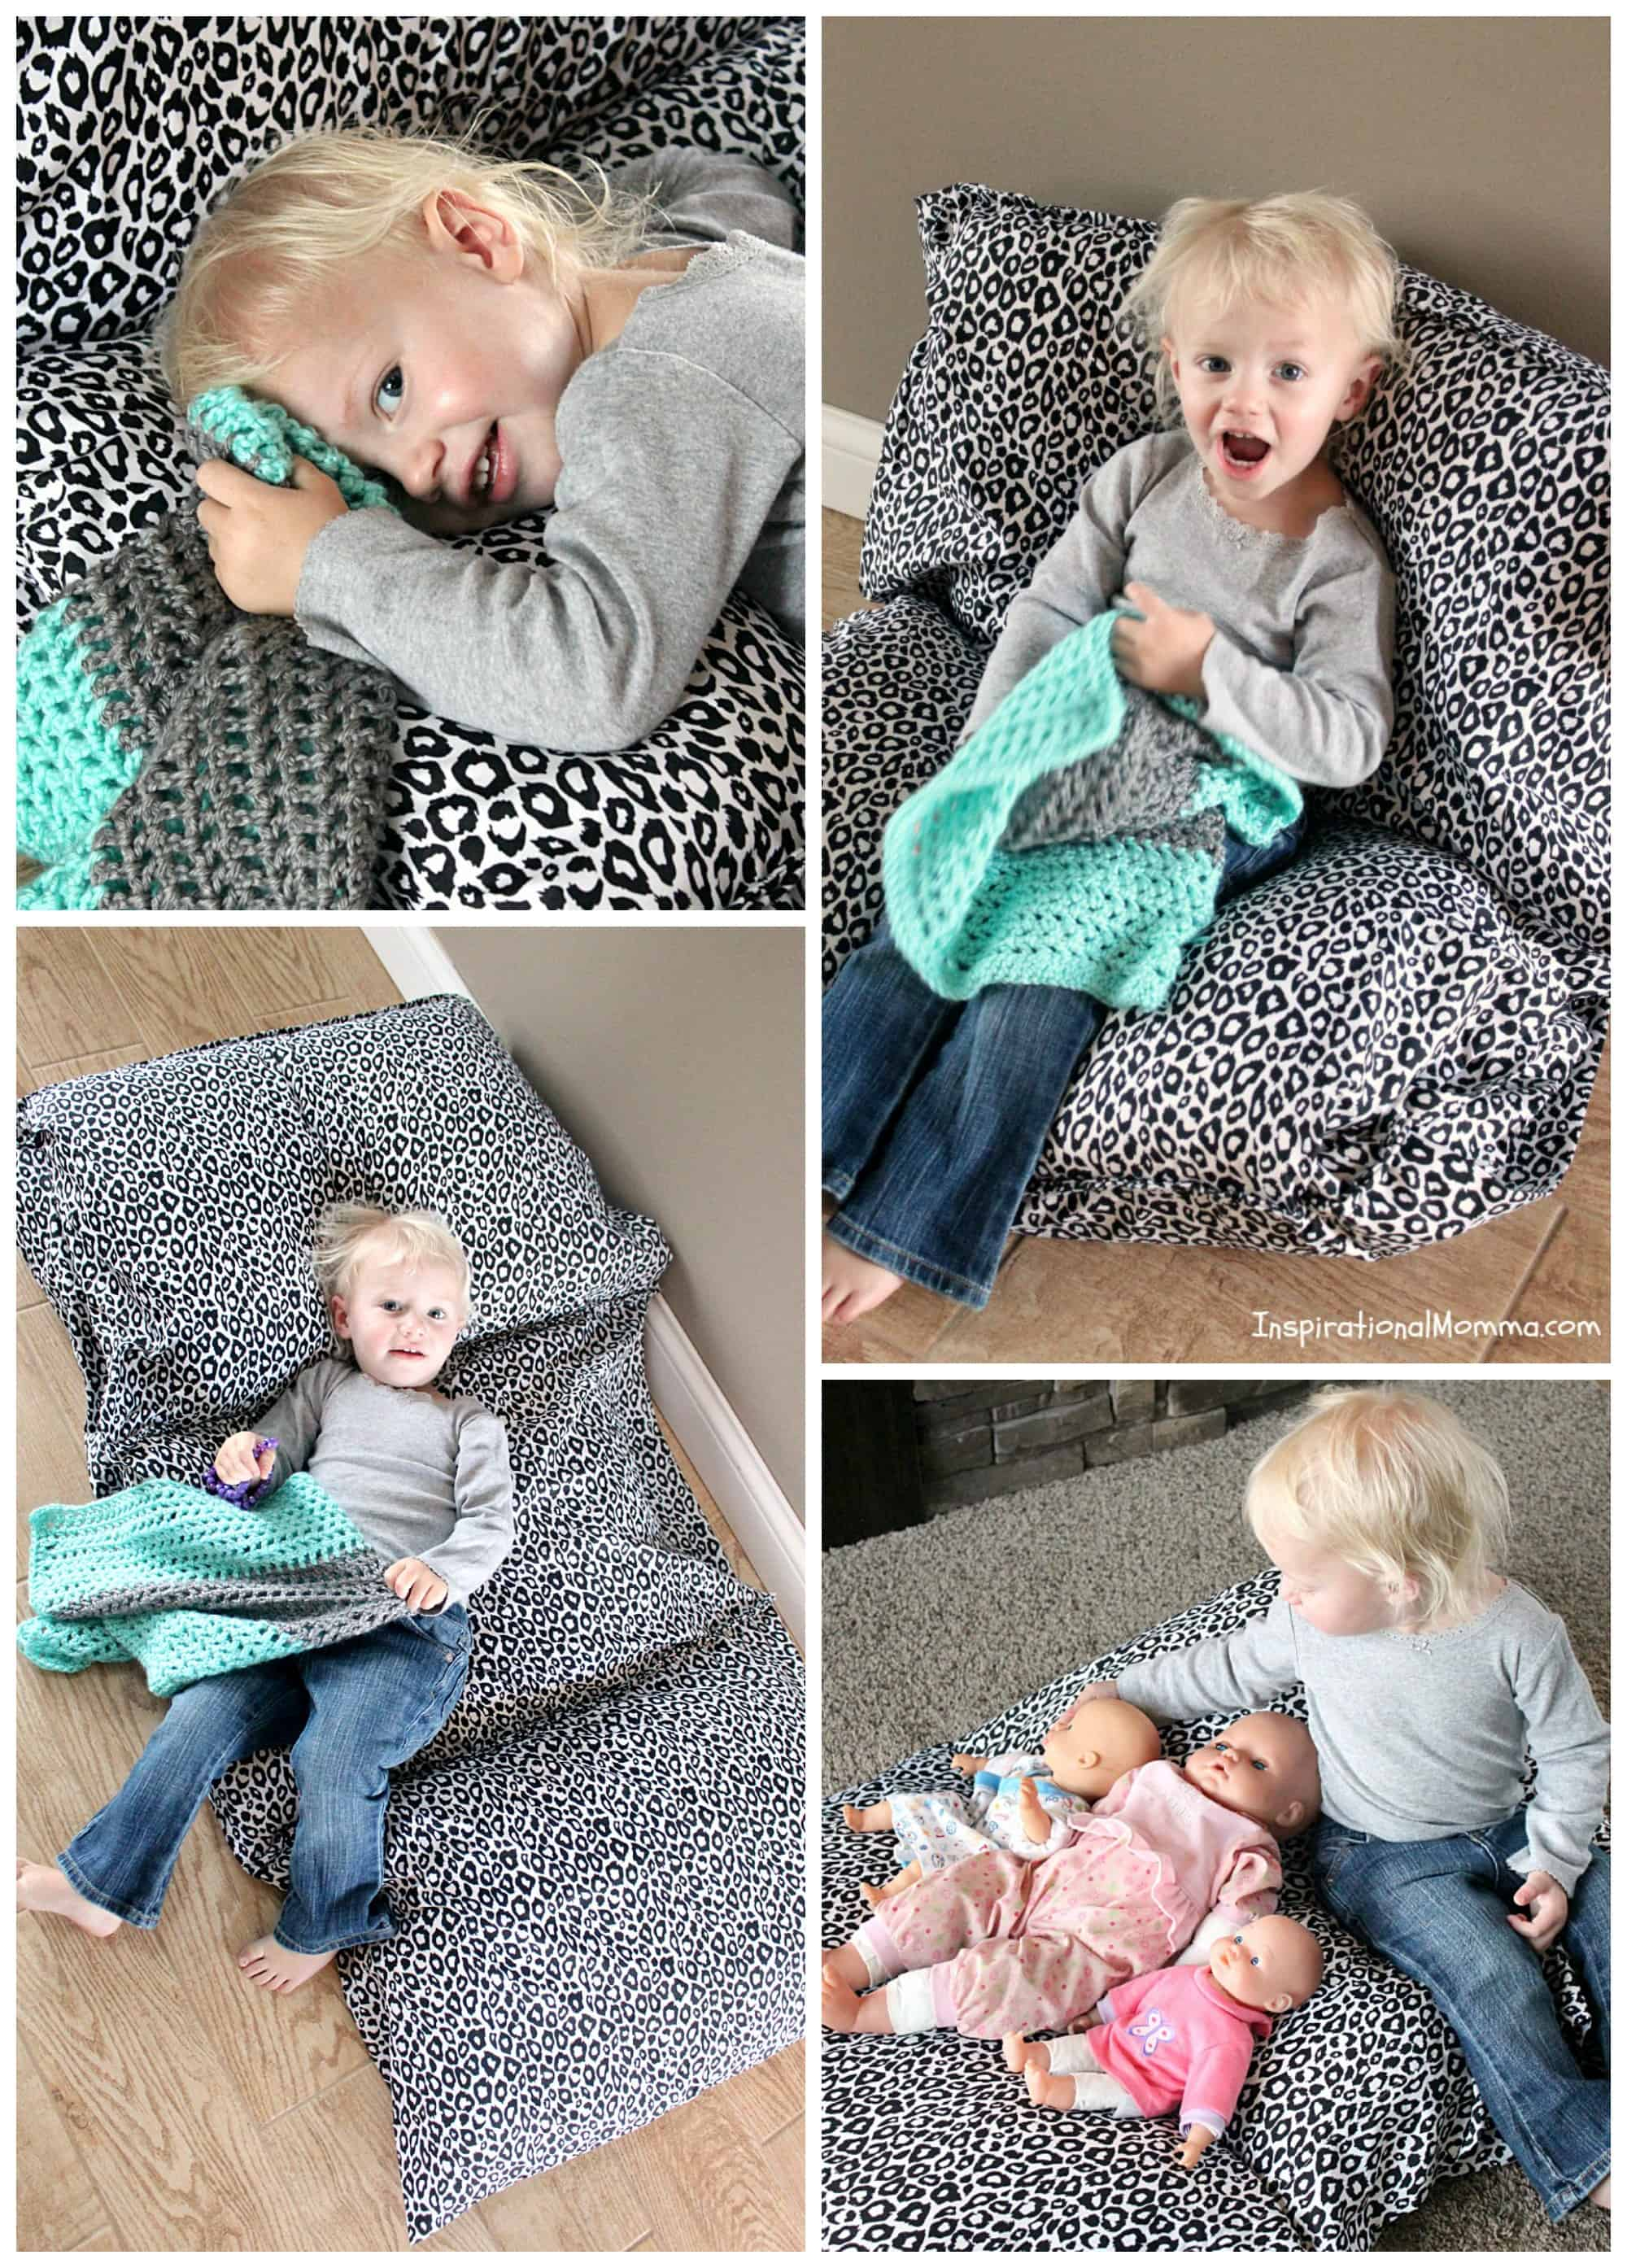 Pillowcase Bed/Chair-This bed/chair is inexpensive and so easy to make. Your little one will love discovering just how many ways it can be used!